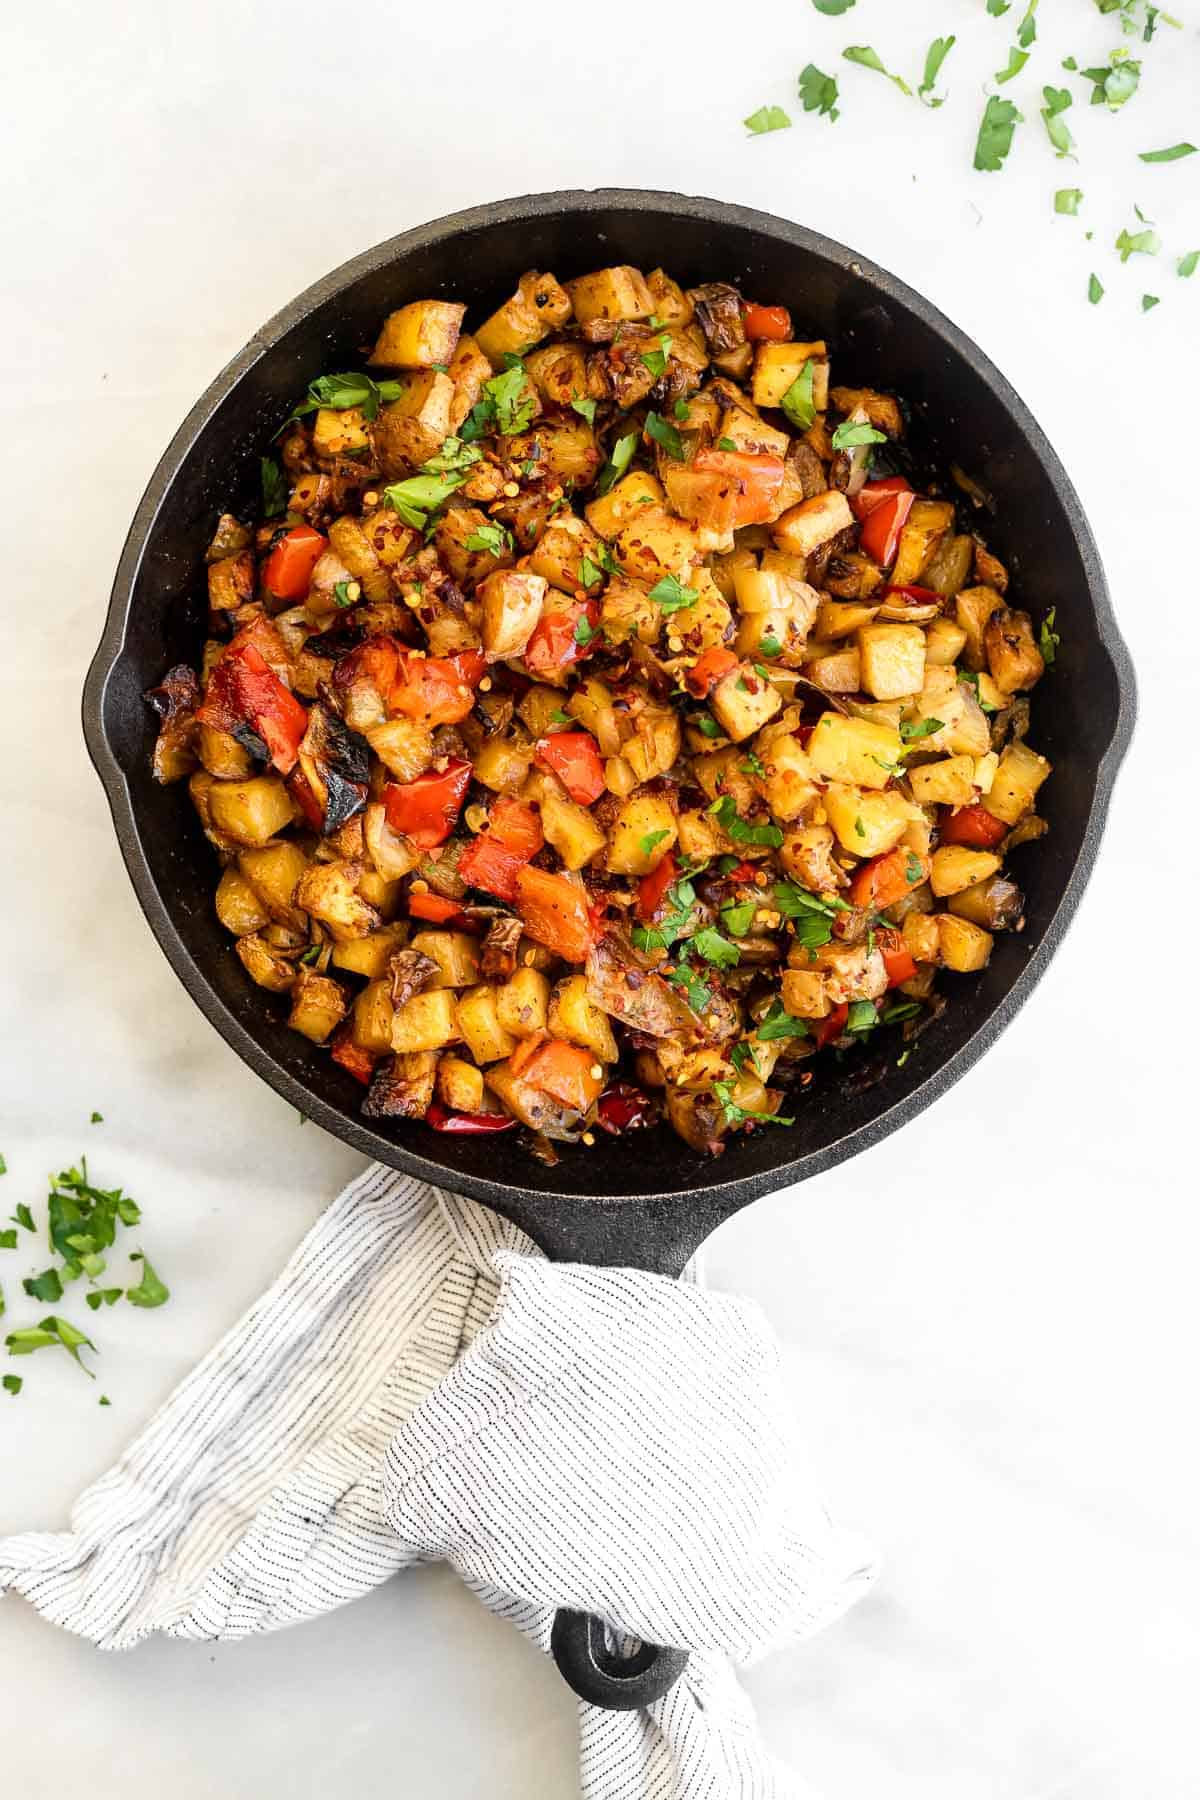 vegan breakfast potatoes in a black skillet with cilantro